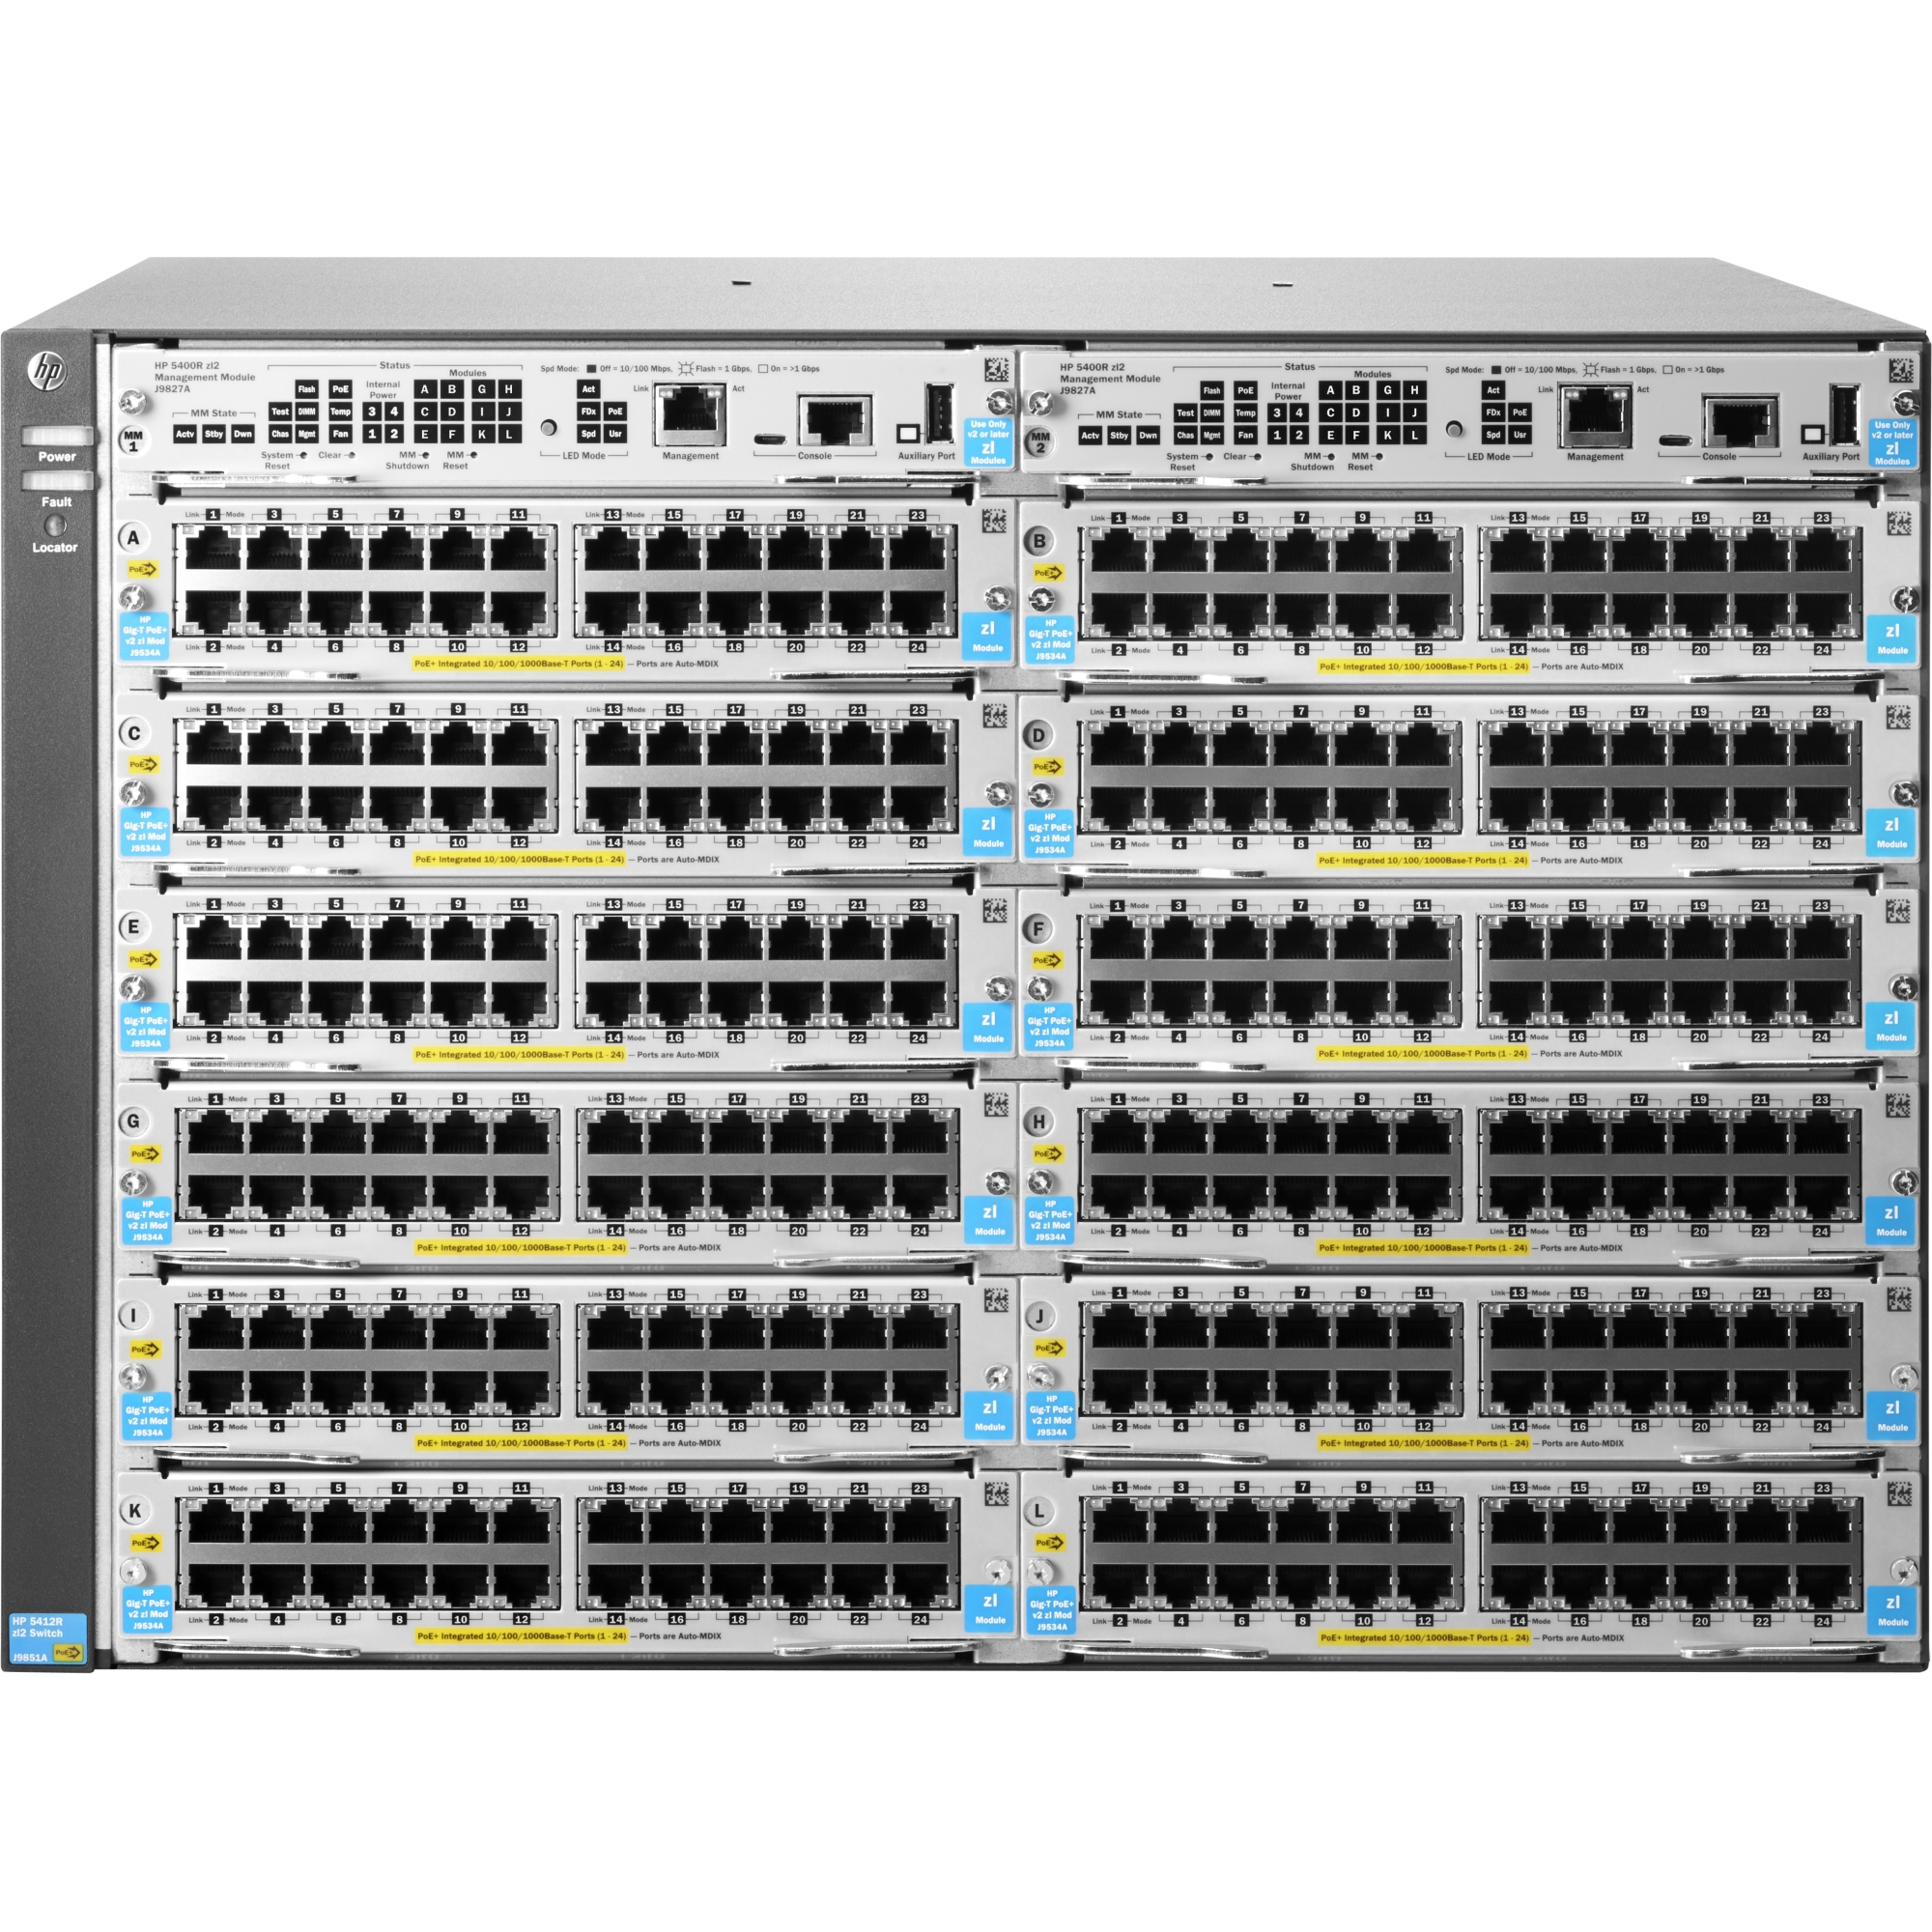 5412R zl2 Switch - Manageable - 12 x Expansion Slots - Modular - 3 Layer Supported - Redundant Power Supply - 7U High - Rack-mountableLifetime Limited Warranty